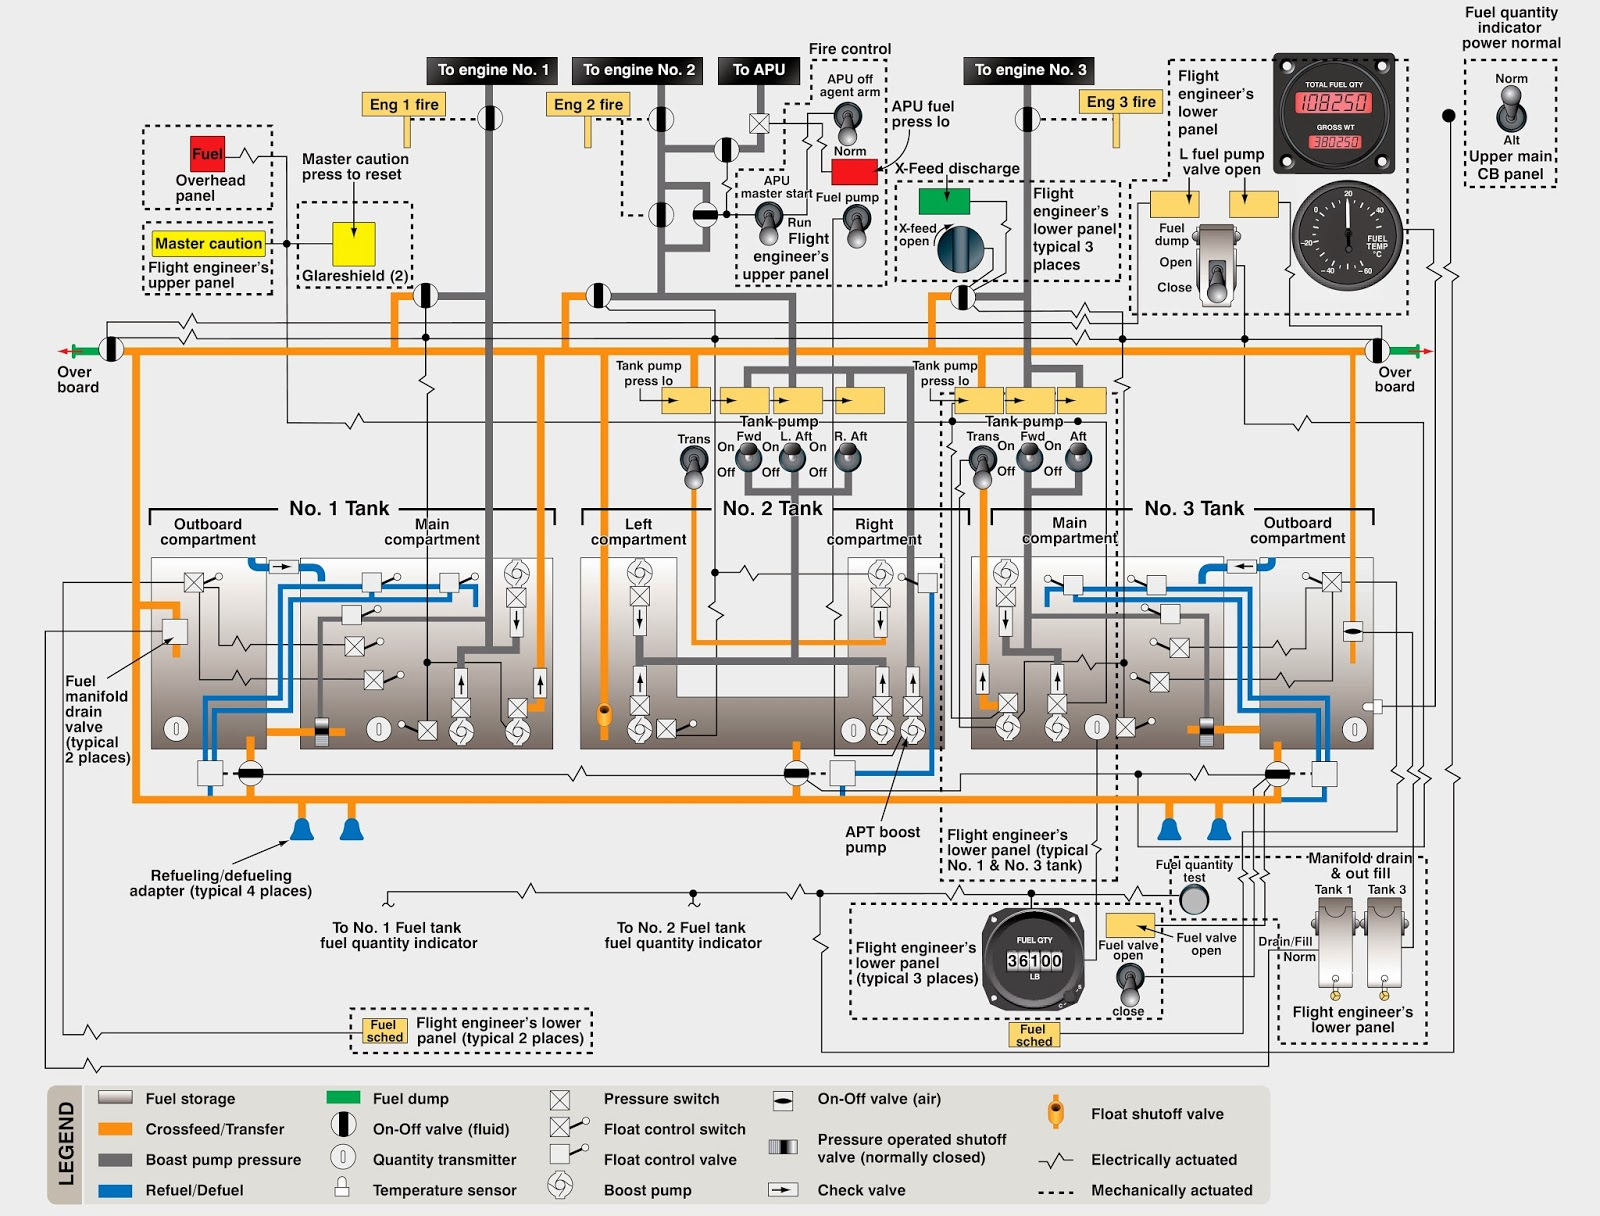 Aircraft Systems Aircraft Fuel Systems